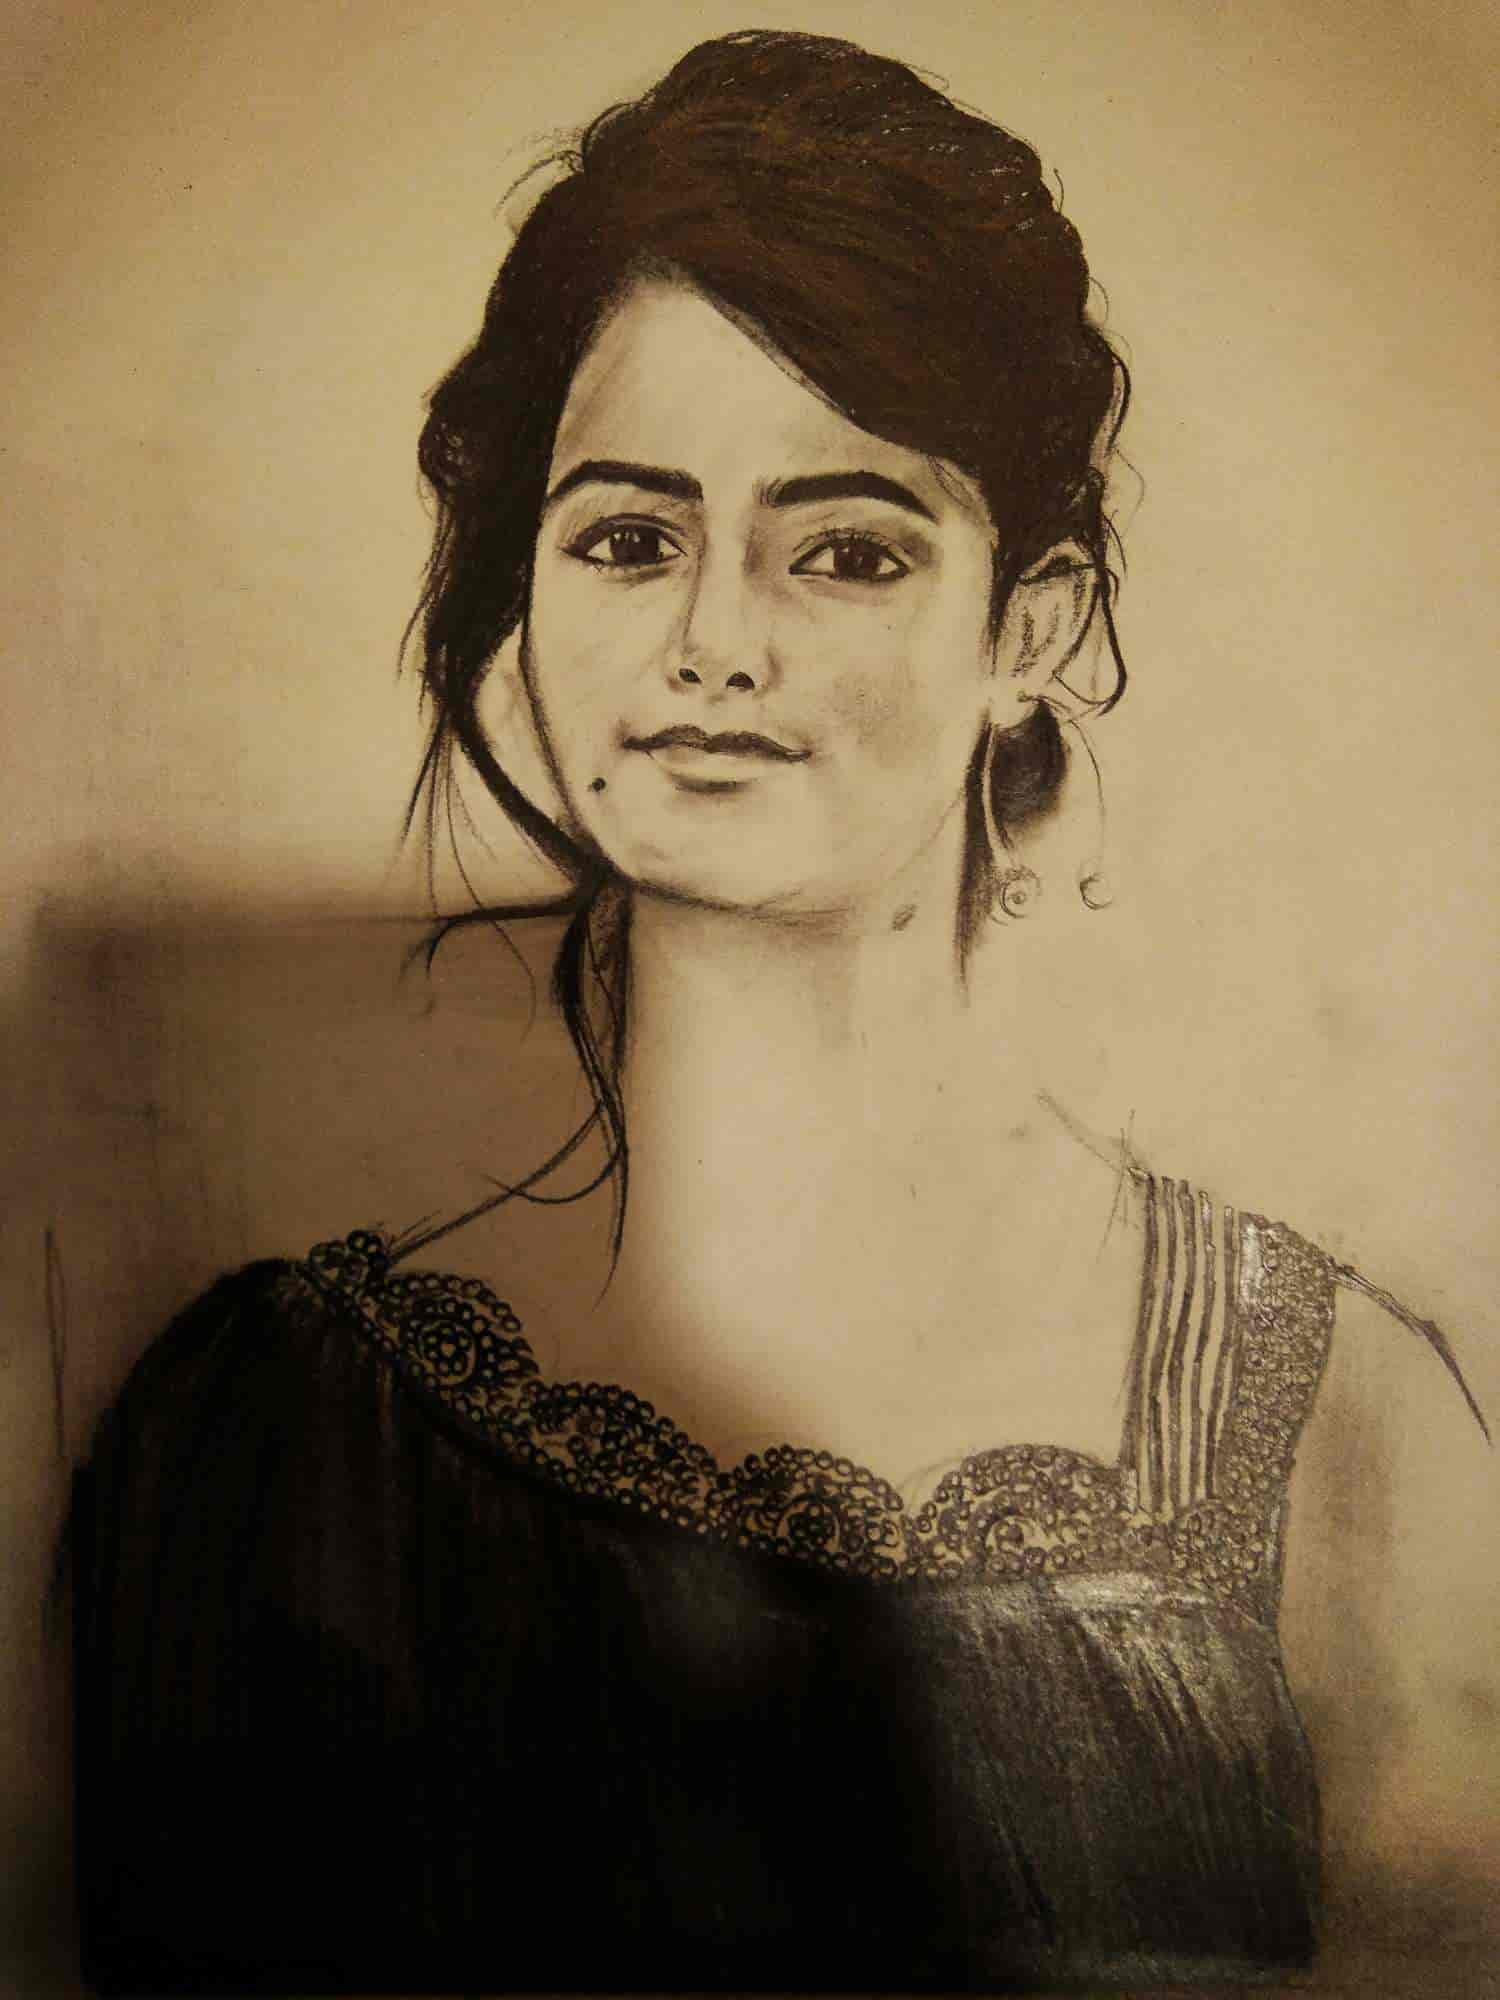 Pencil sketch raghava pencil art photos yeshwanthpur bangalore art galleries